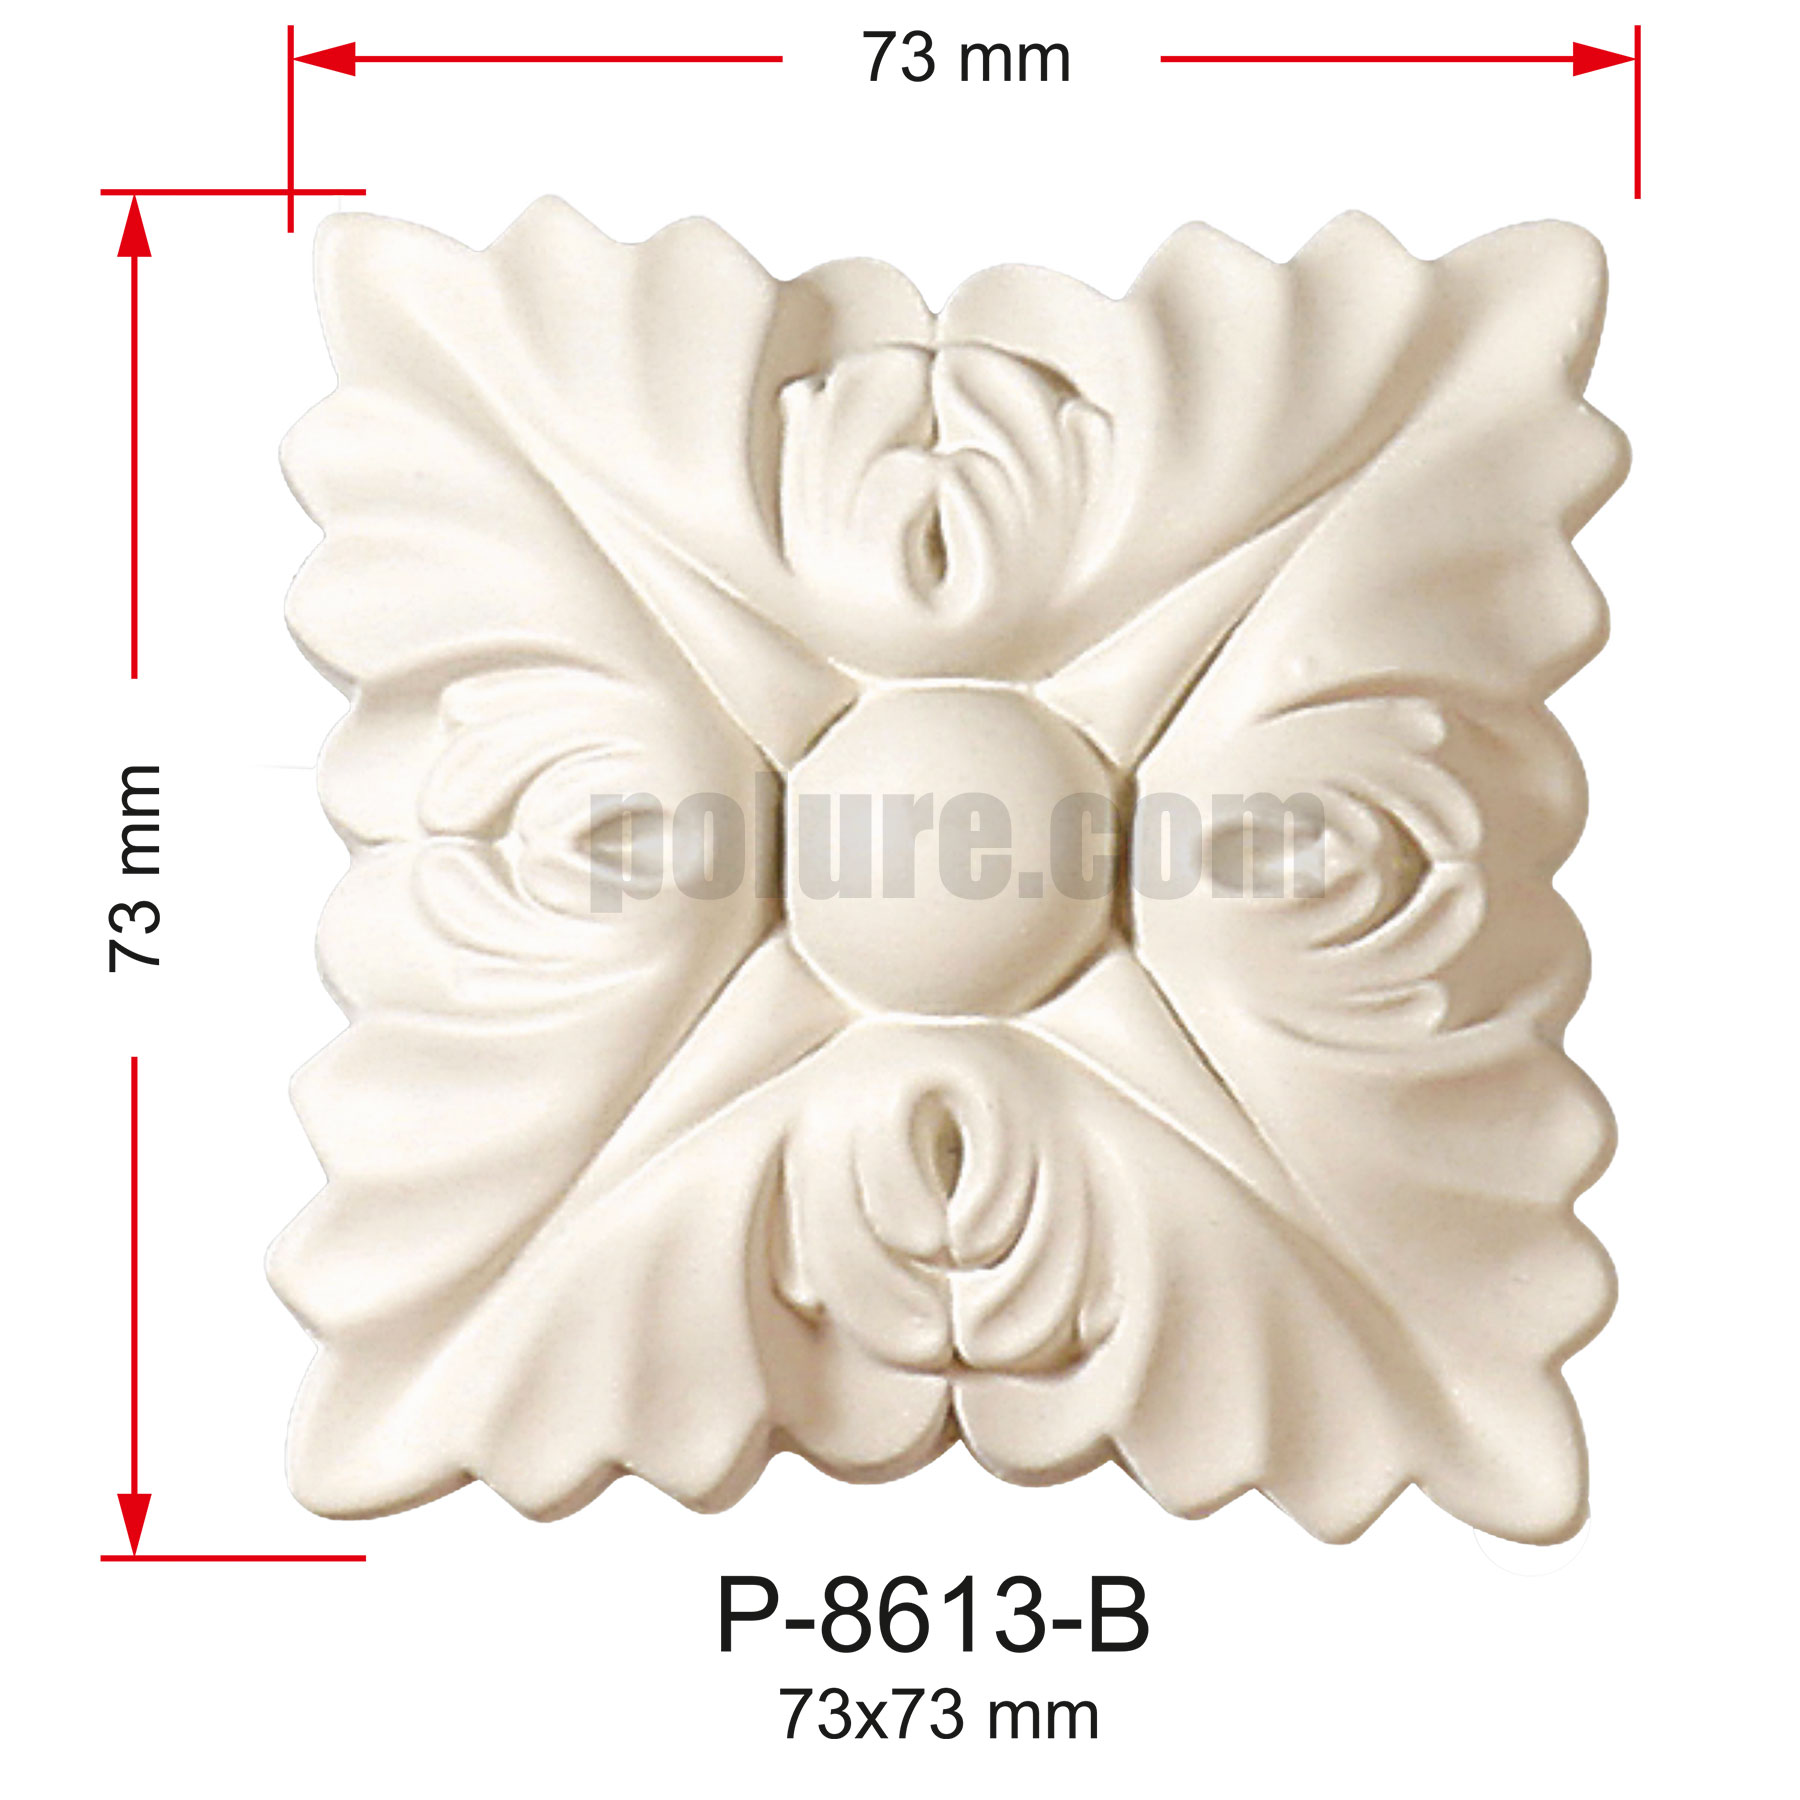 Polyurethane keystone decorative accossory manufactoring and jamb keystone molding ornament motifs.